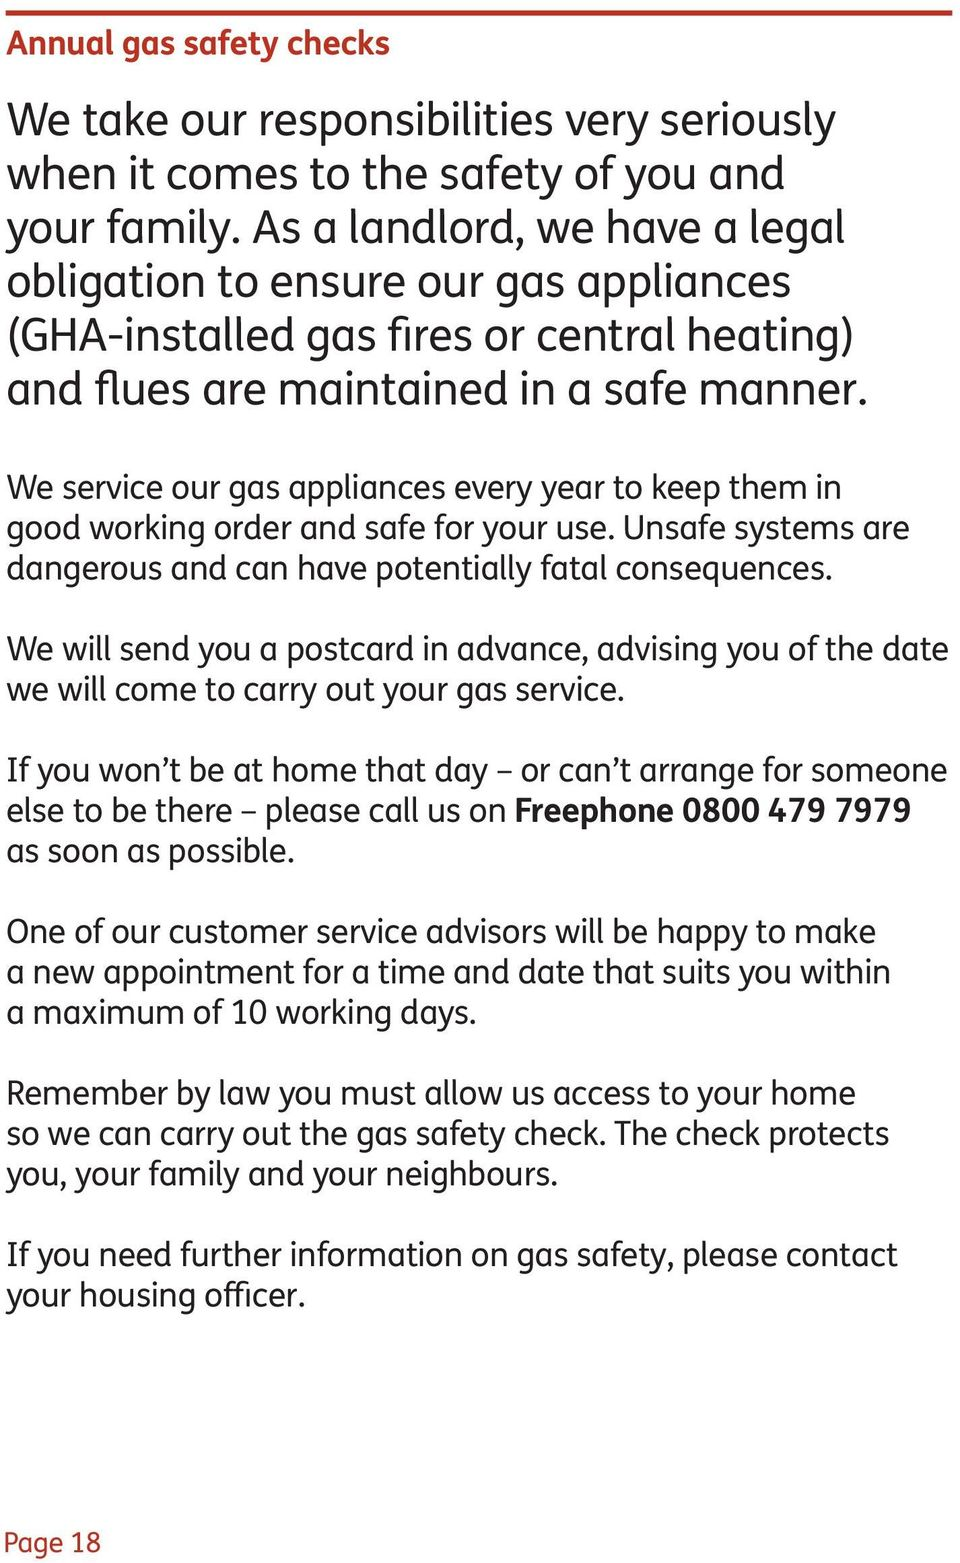 We service our gas appliances every year to keep them in good working order and safe for your use. Unsafe systems are dangerous and can have potentially fatal consequences.